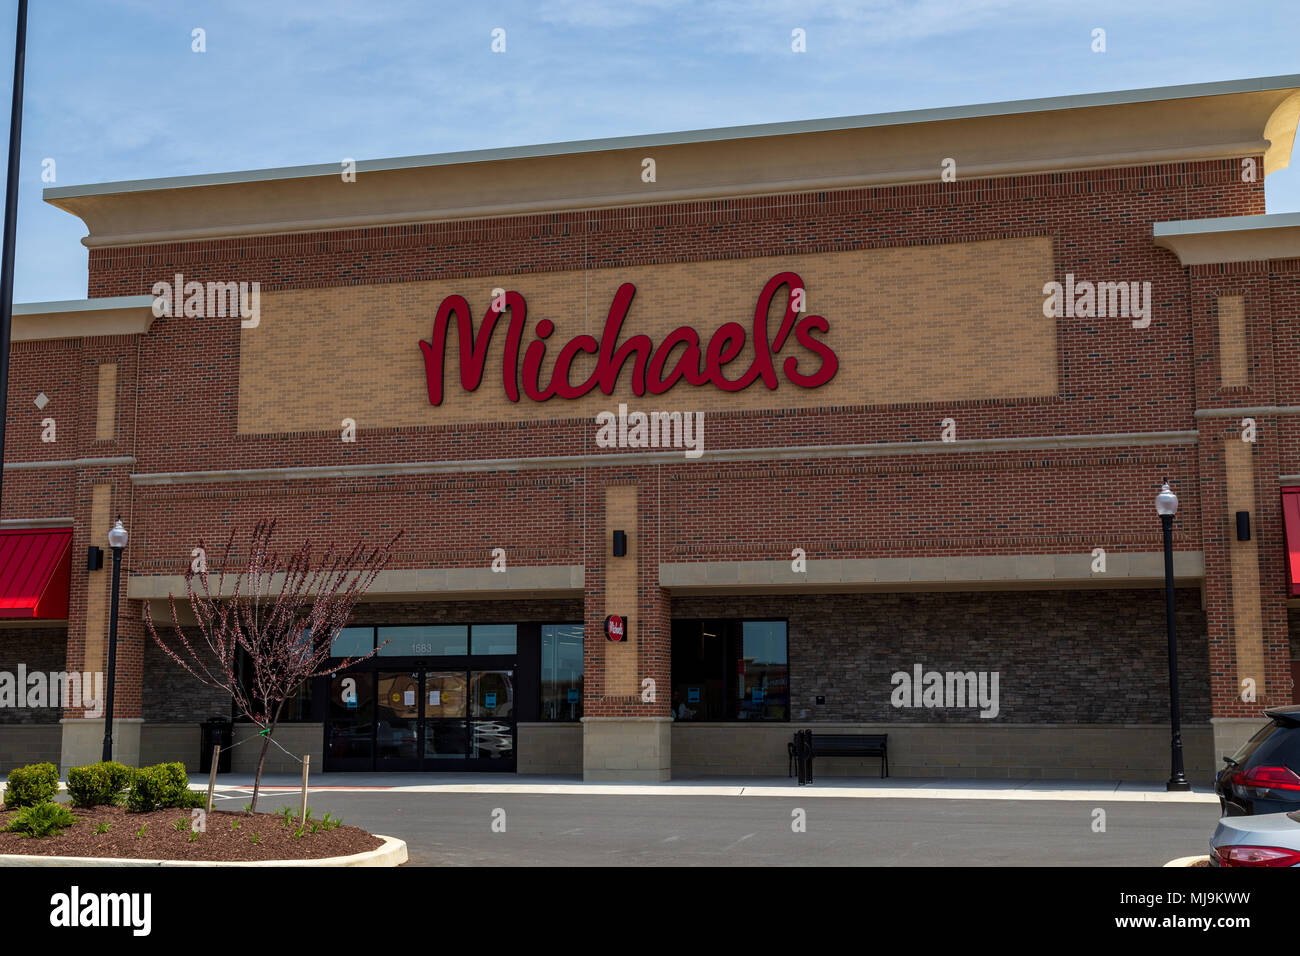 michaels stores stock photos michaels stores stock images alamy. Black Bedroom Furniture Sets. Home Design Ideas